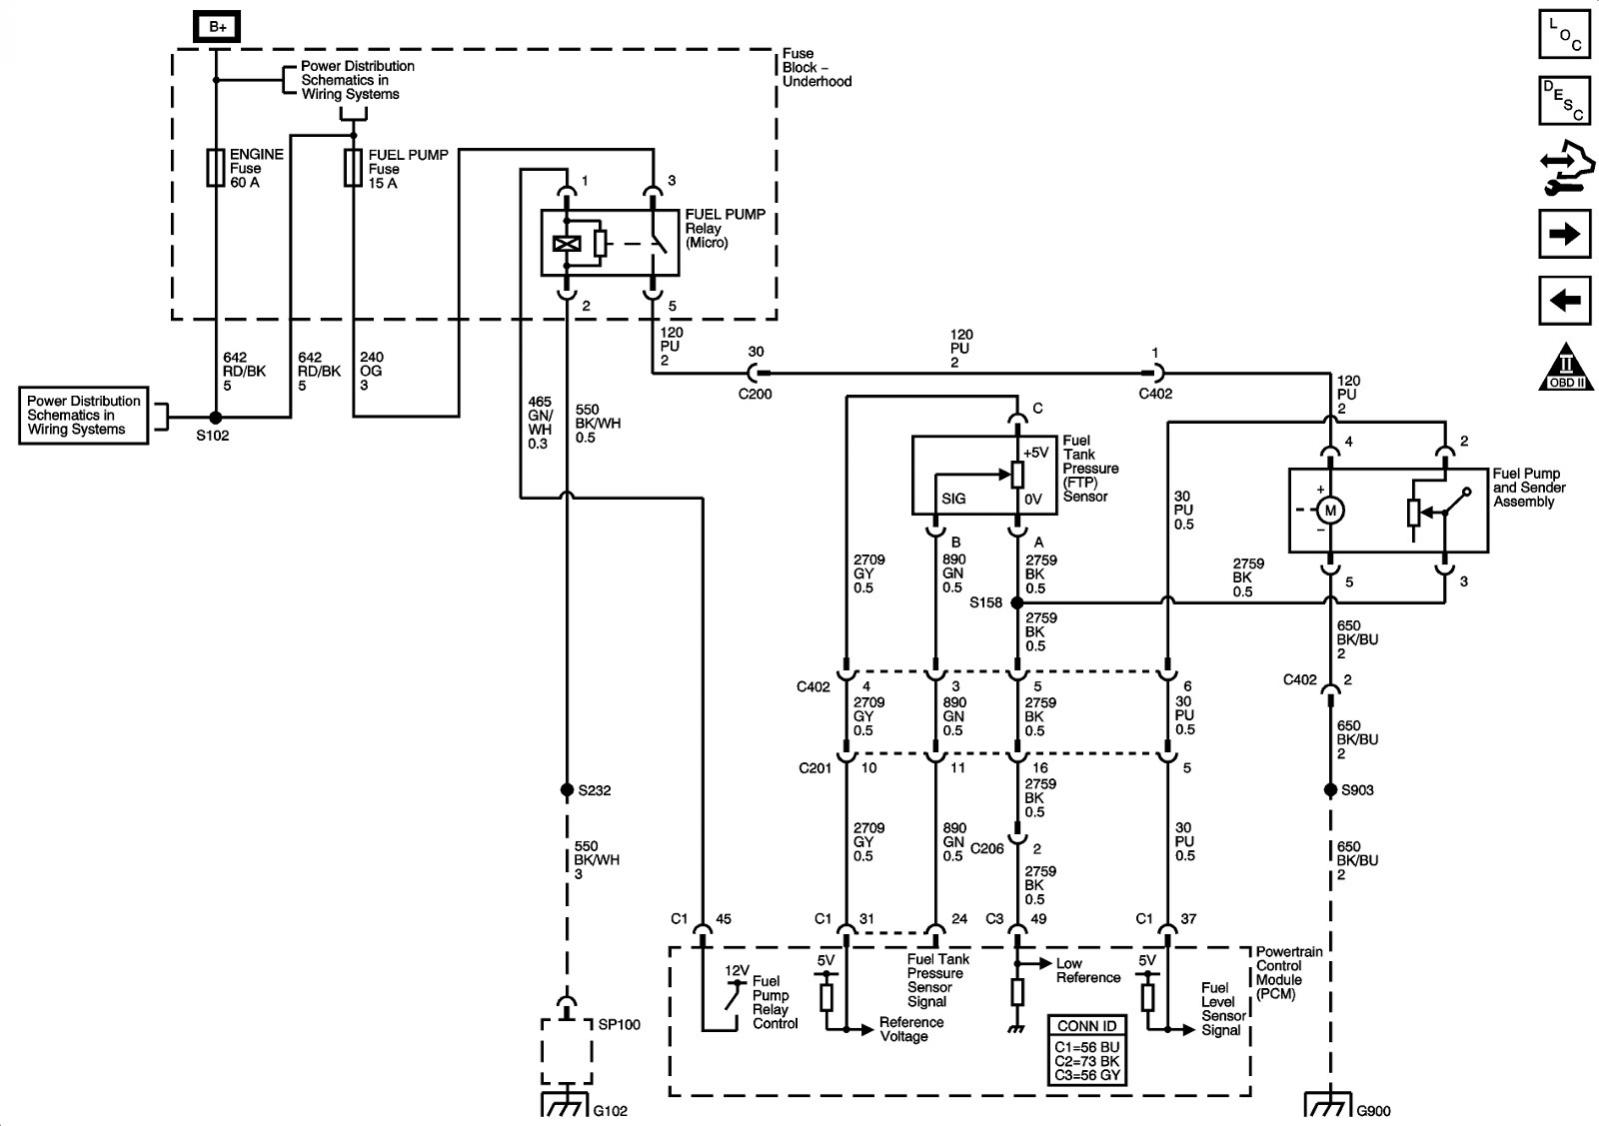 fuel pump wiring diagram needed ls1gtocom forums With 2005 gto fuel pump